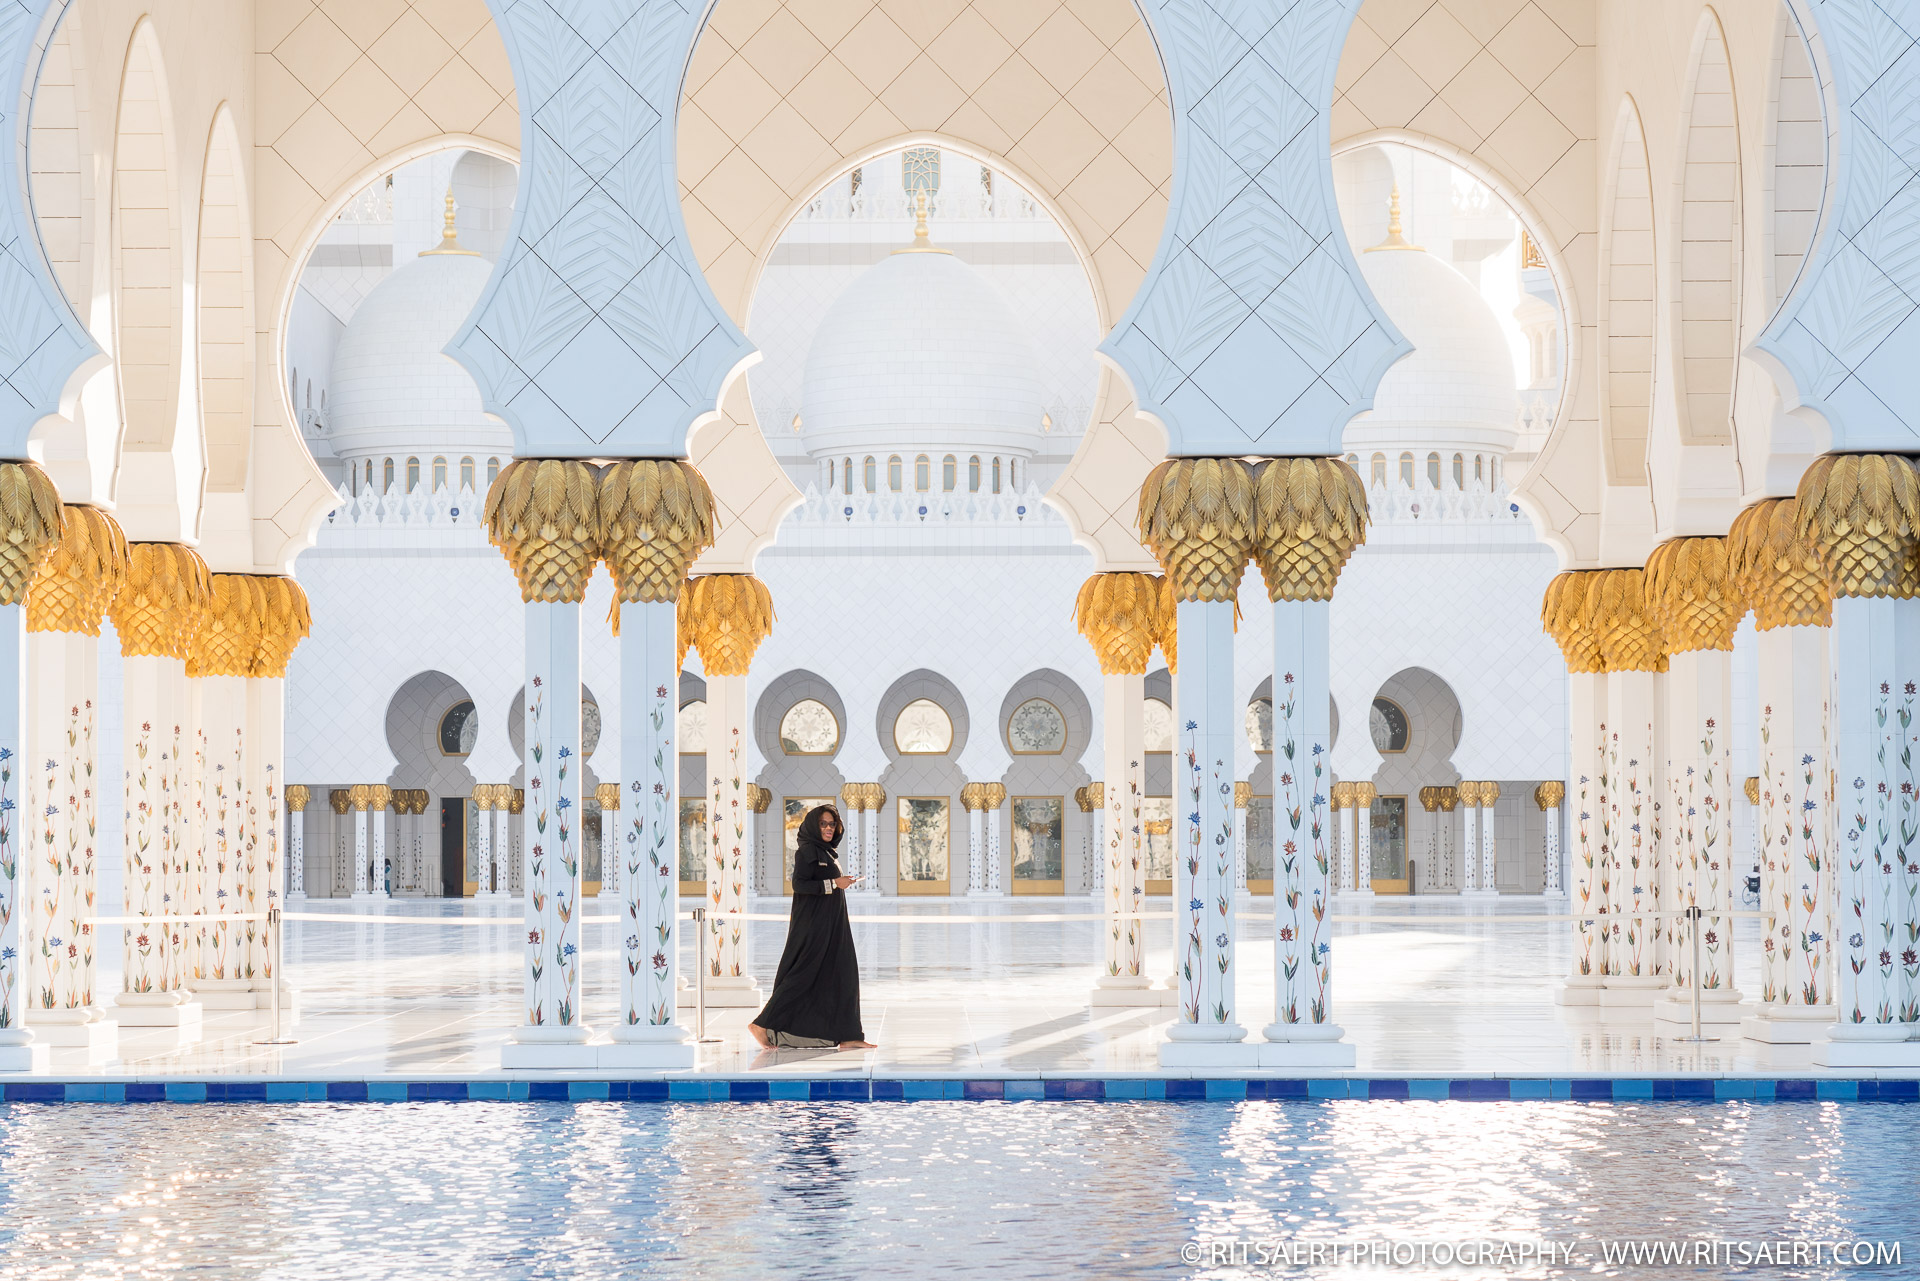 Woman at Sheikh Zayed Grand Mosque - Abu Dhabi